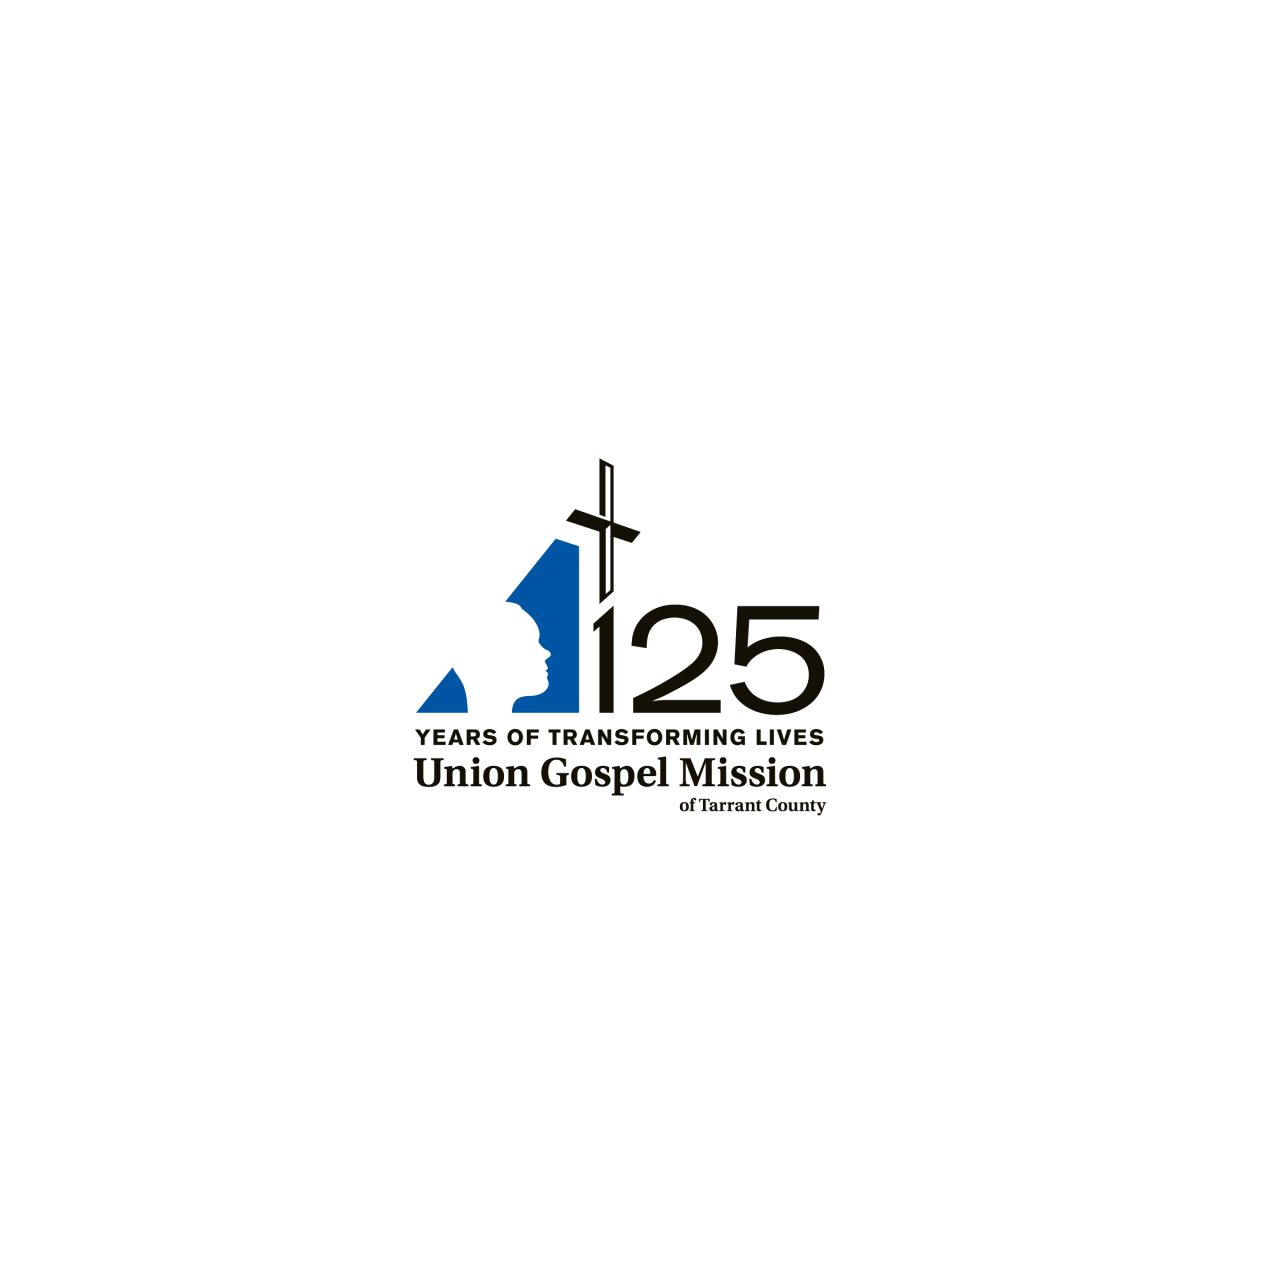 Image of Union Gospel Mission 125th Anniversary logo